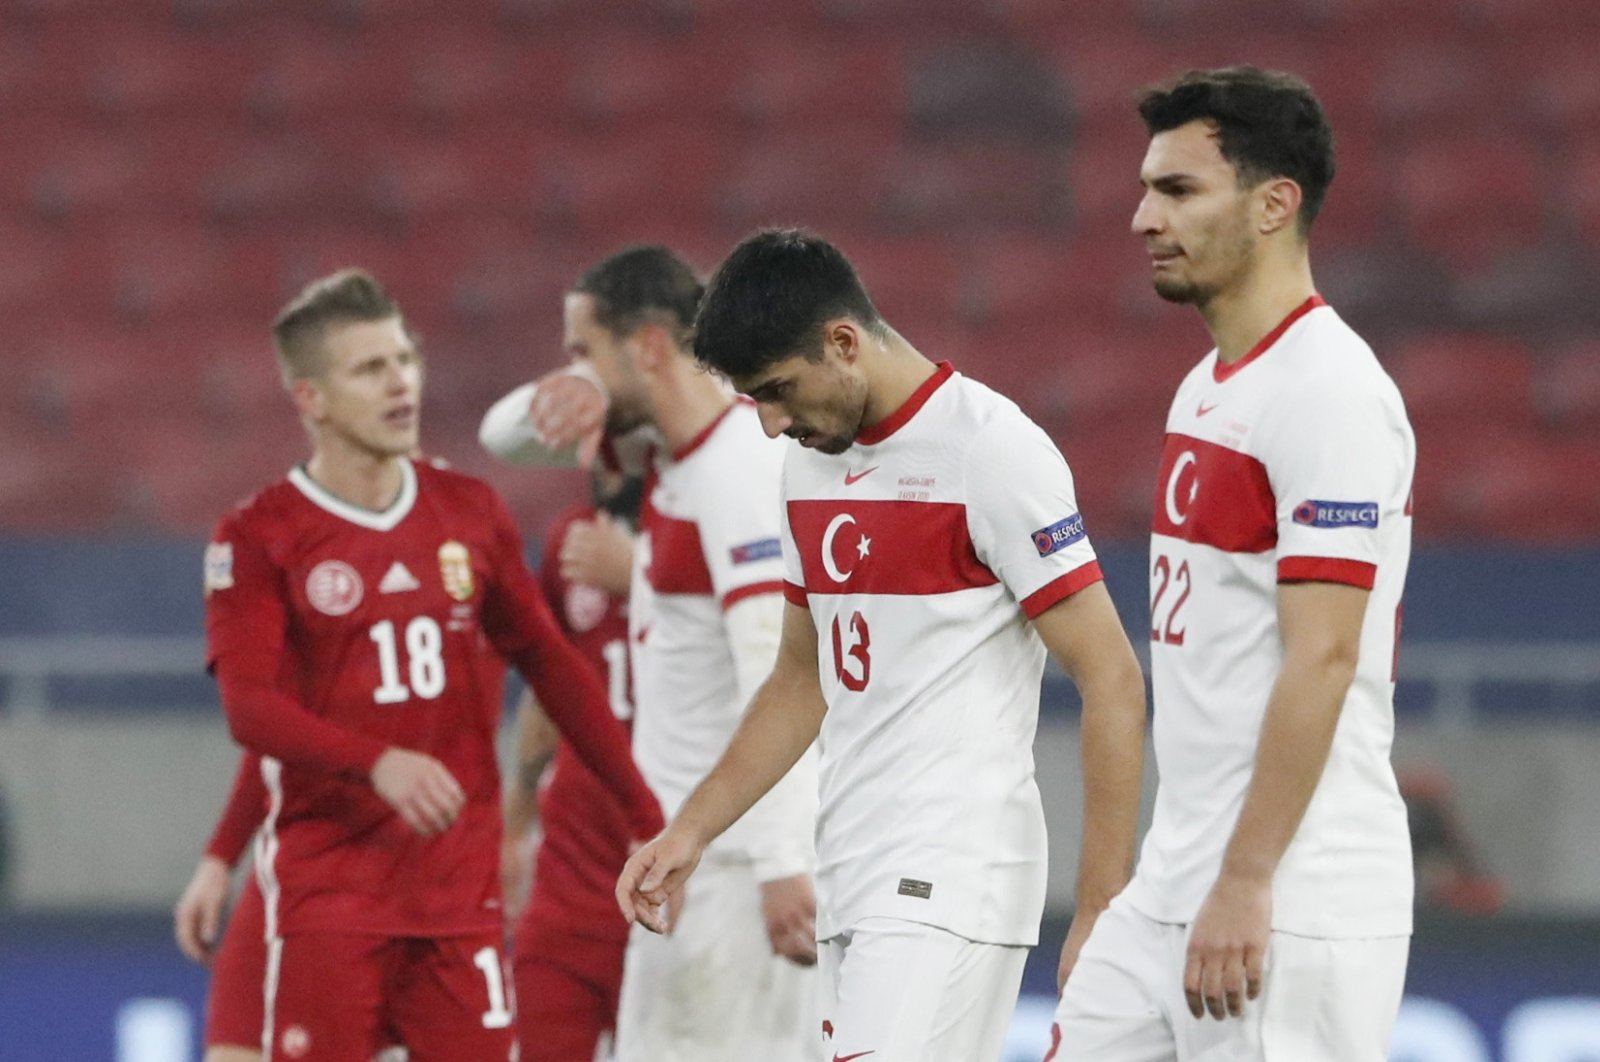 Turkey's Berkay Özcan and Kaan Ayhan look dejected at the end of the match between Hungary and Turkey at Puskas Arena, Budapest, Hungary, Nov. 18, 2020. (Reuters Photo)